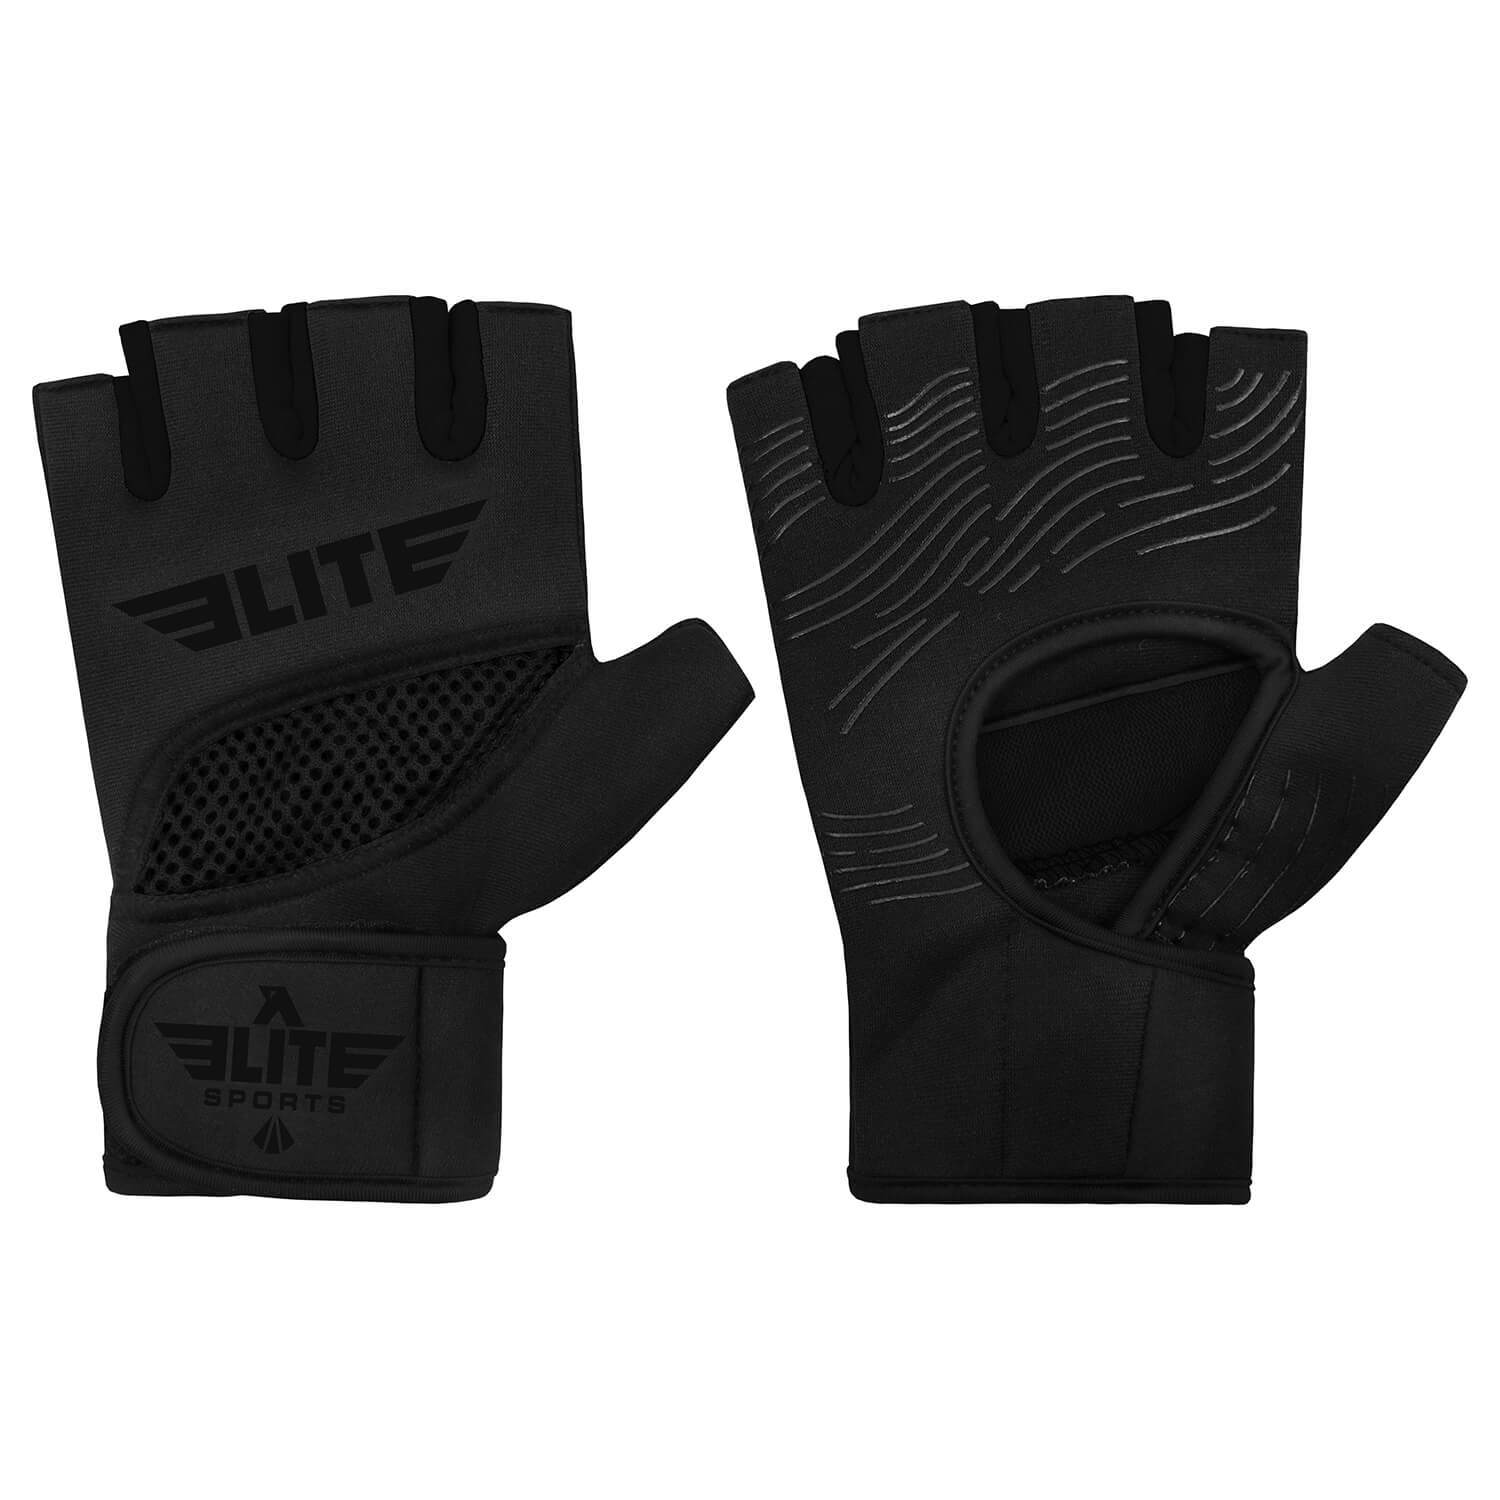 Load image into Gallery viewer, Elite Sports Black Cross Training Gel Hand Wraps